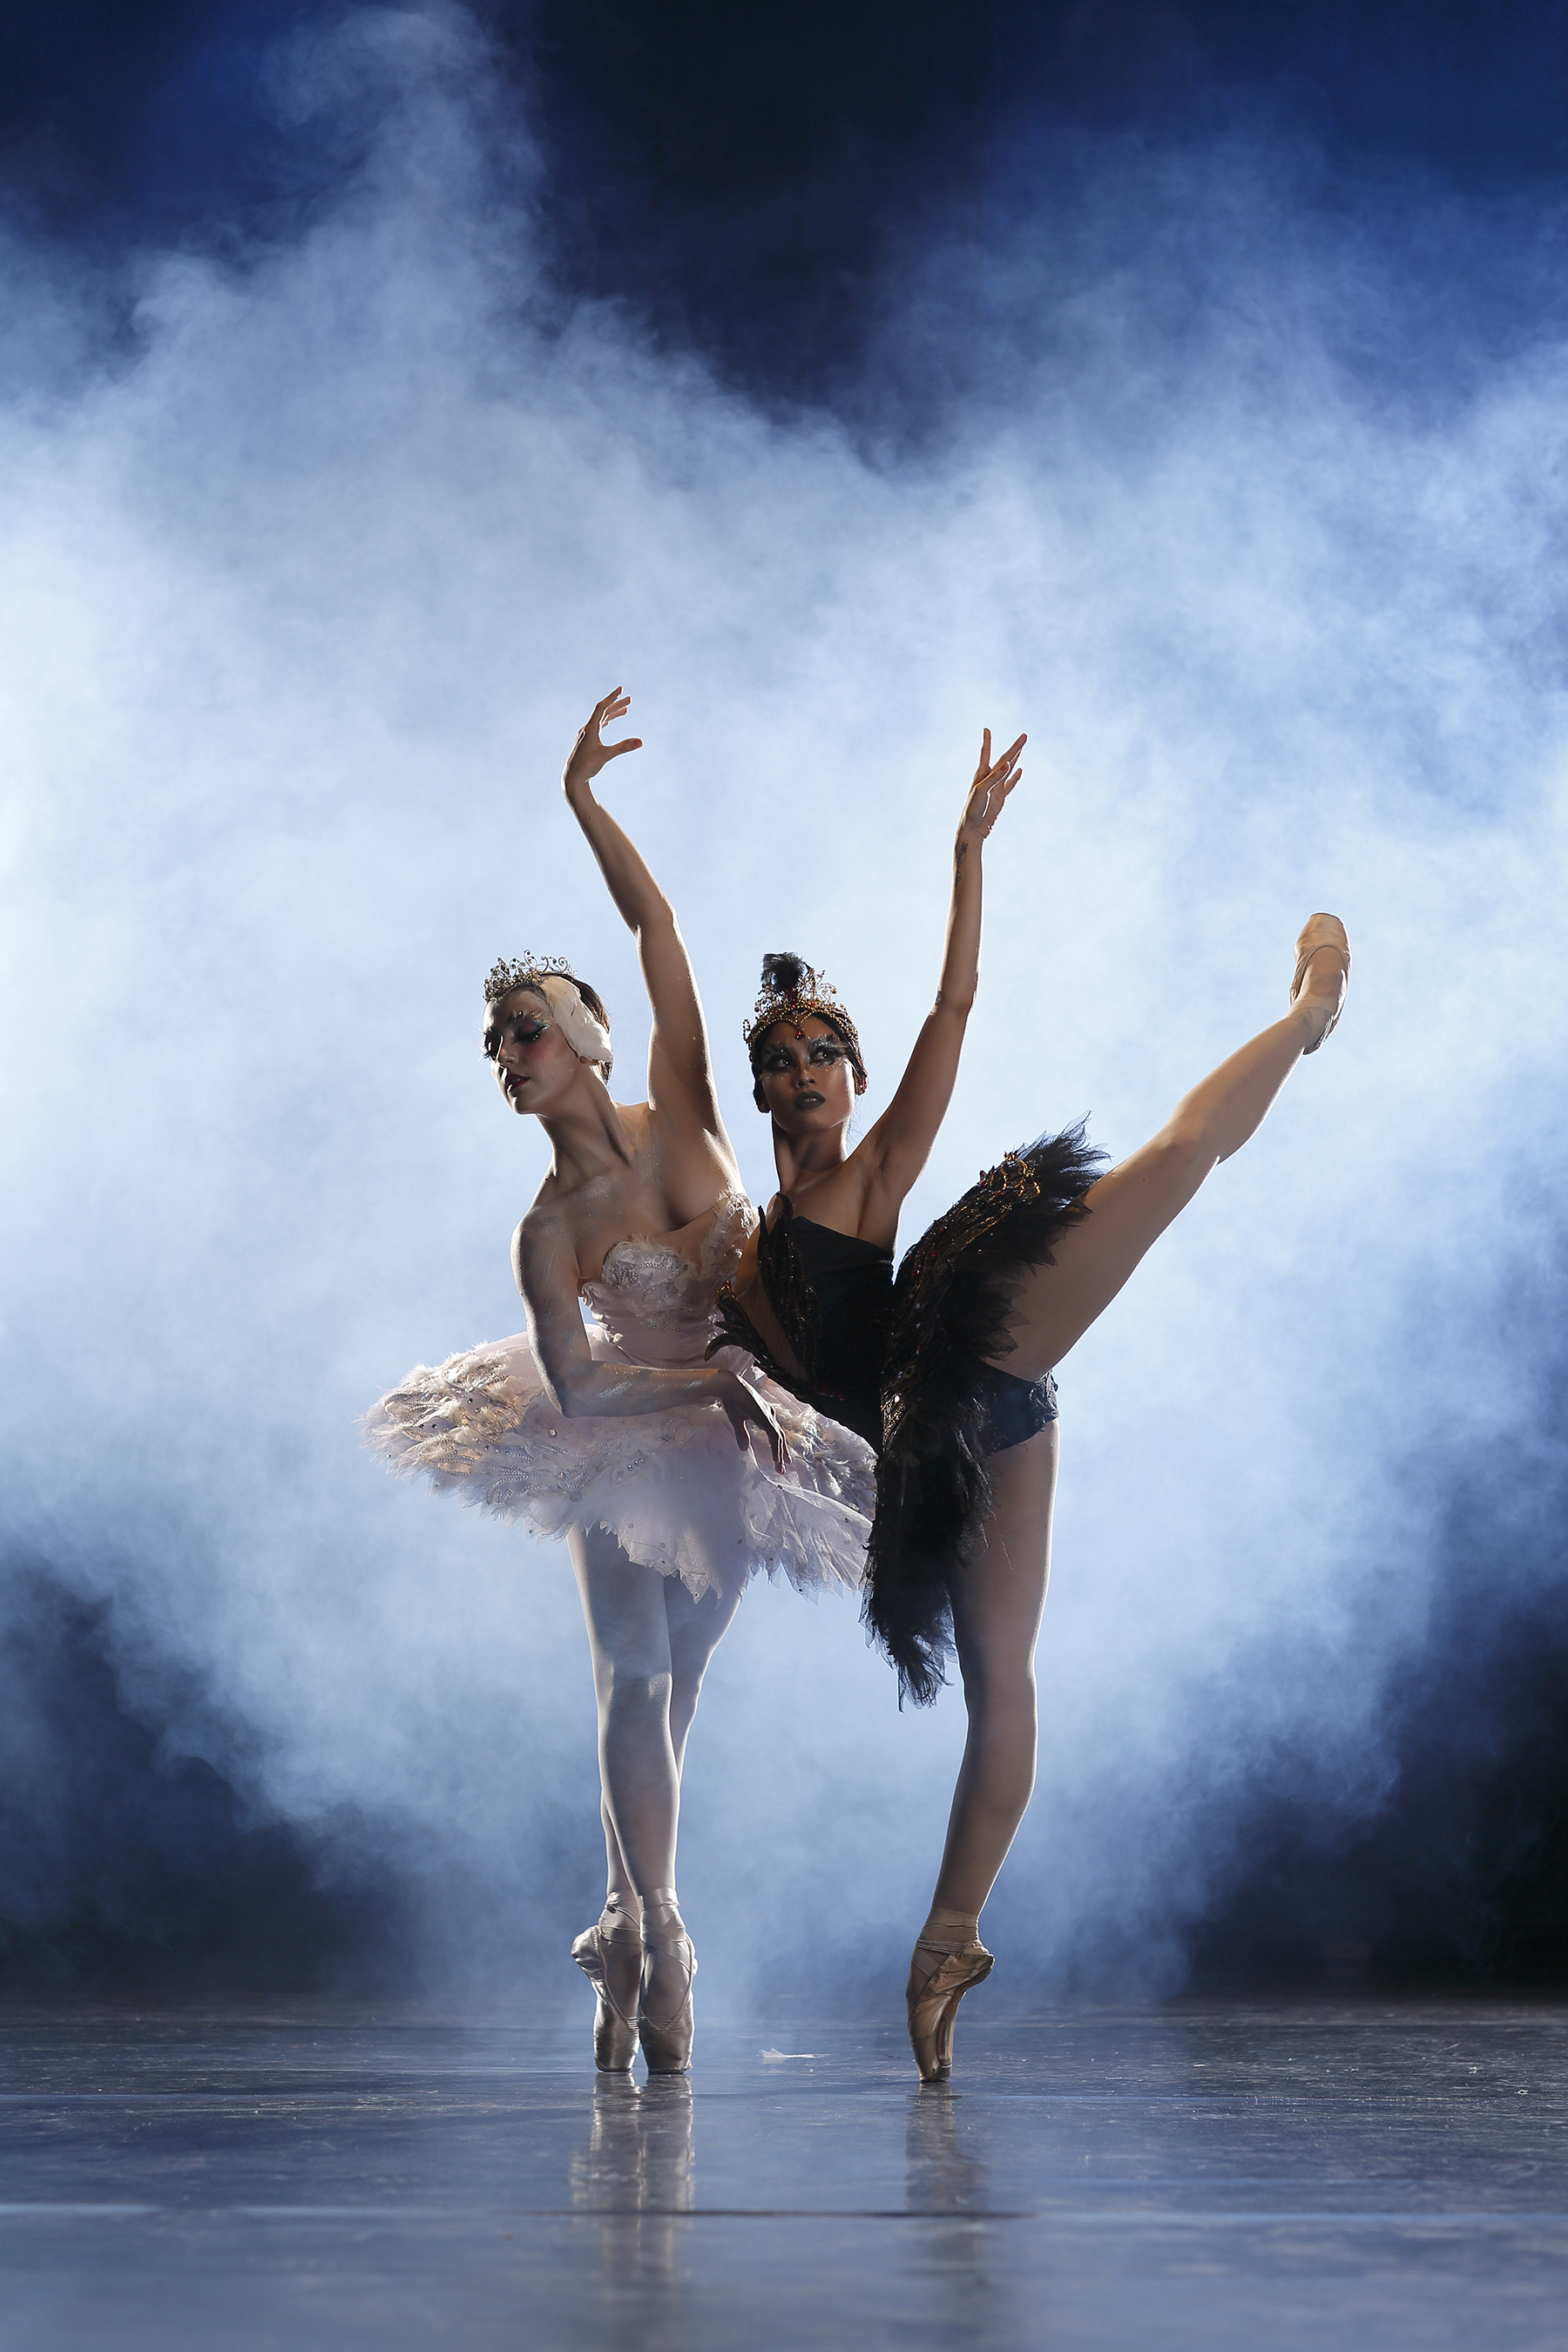 Principal dancer Katherine Barkman and soloist Joan Emery Sia debut in the dual role of Odette and Odile in Ballet Manila's 2017 production of the full-length    Swan Lake   . Photo by Ocs Alvarez